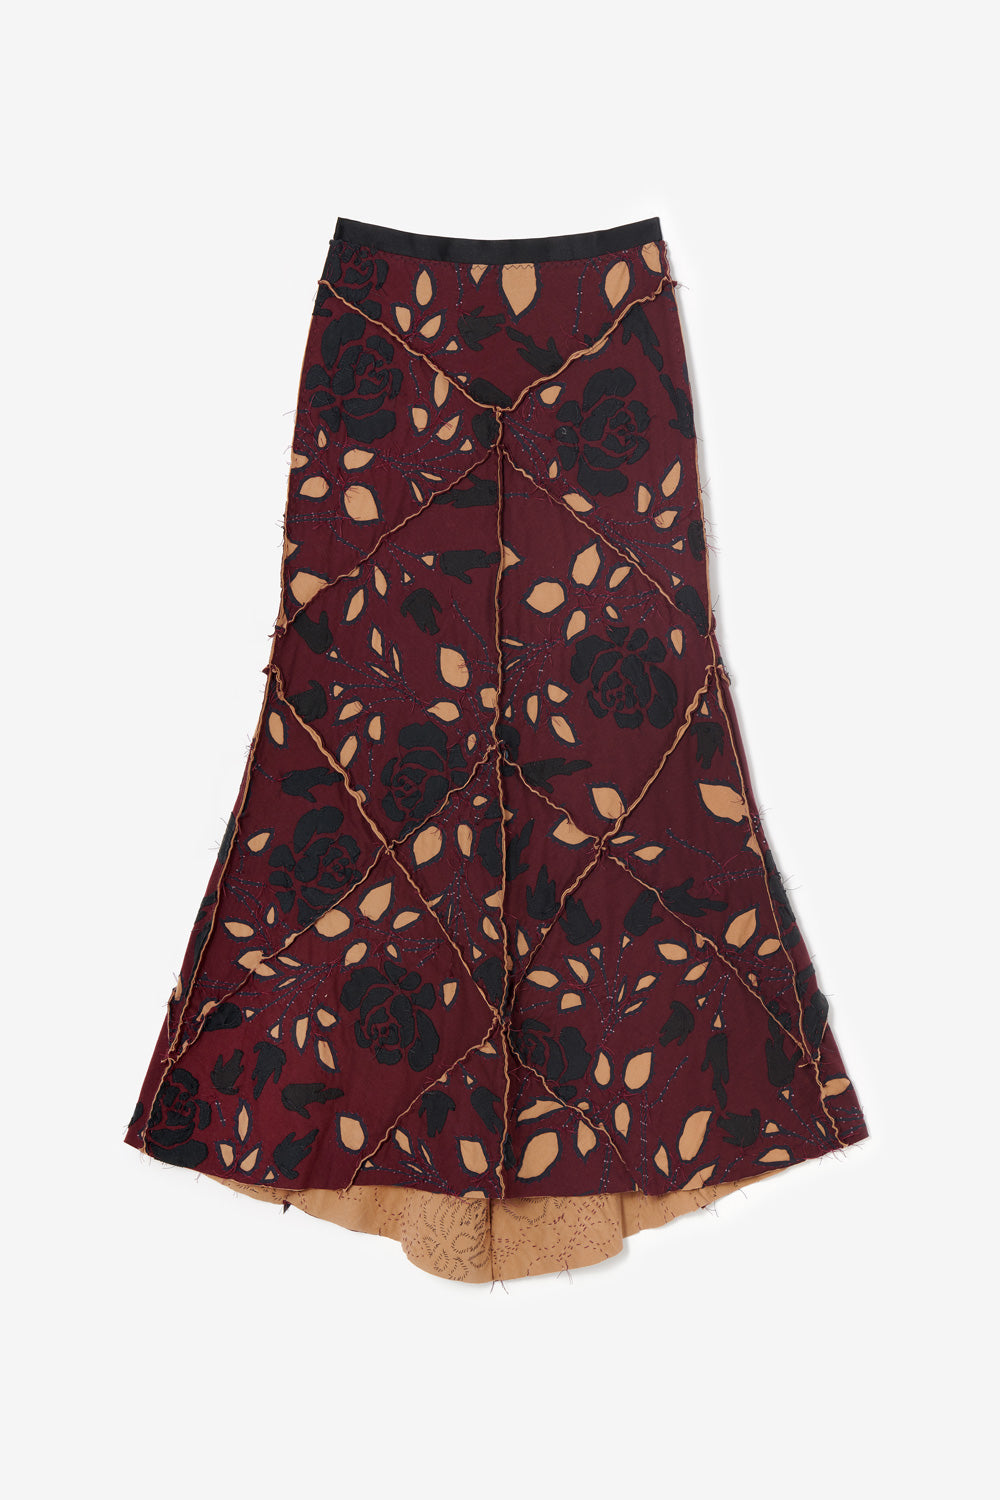 Alabama Chanin Fernando Rose Plum Long Skirt in Embroidered and Beaded Designs in Supima 100% Organic and Upcycled Cotton Jersey